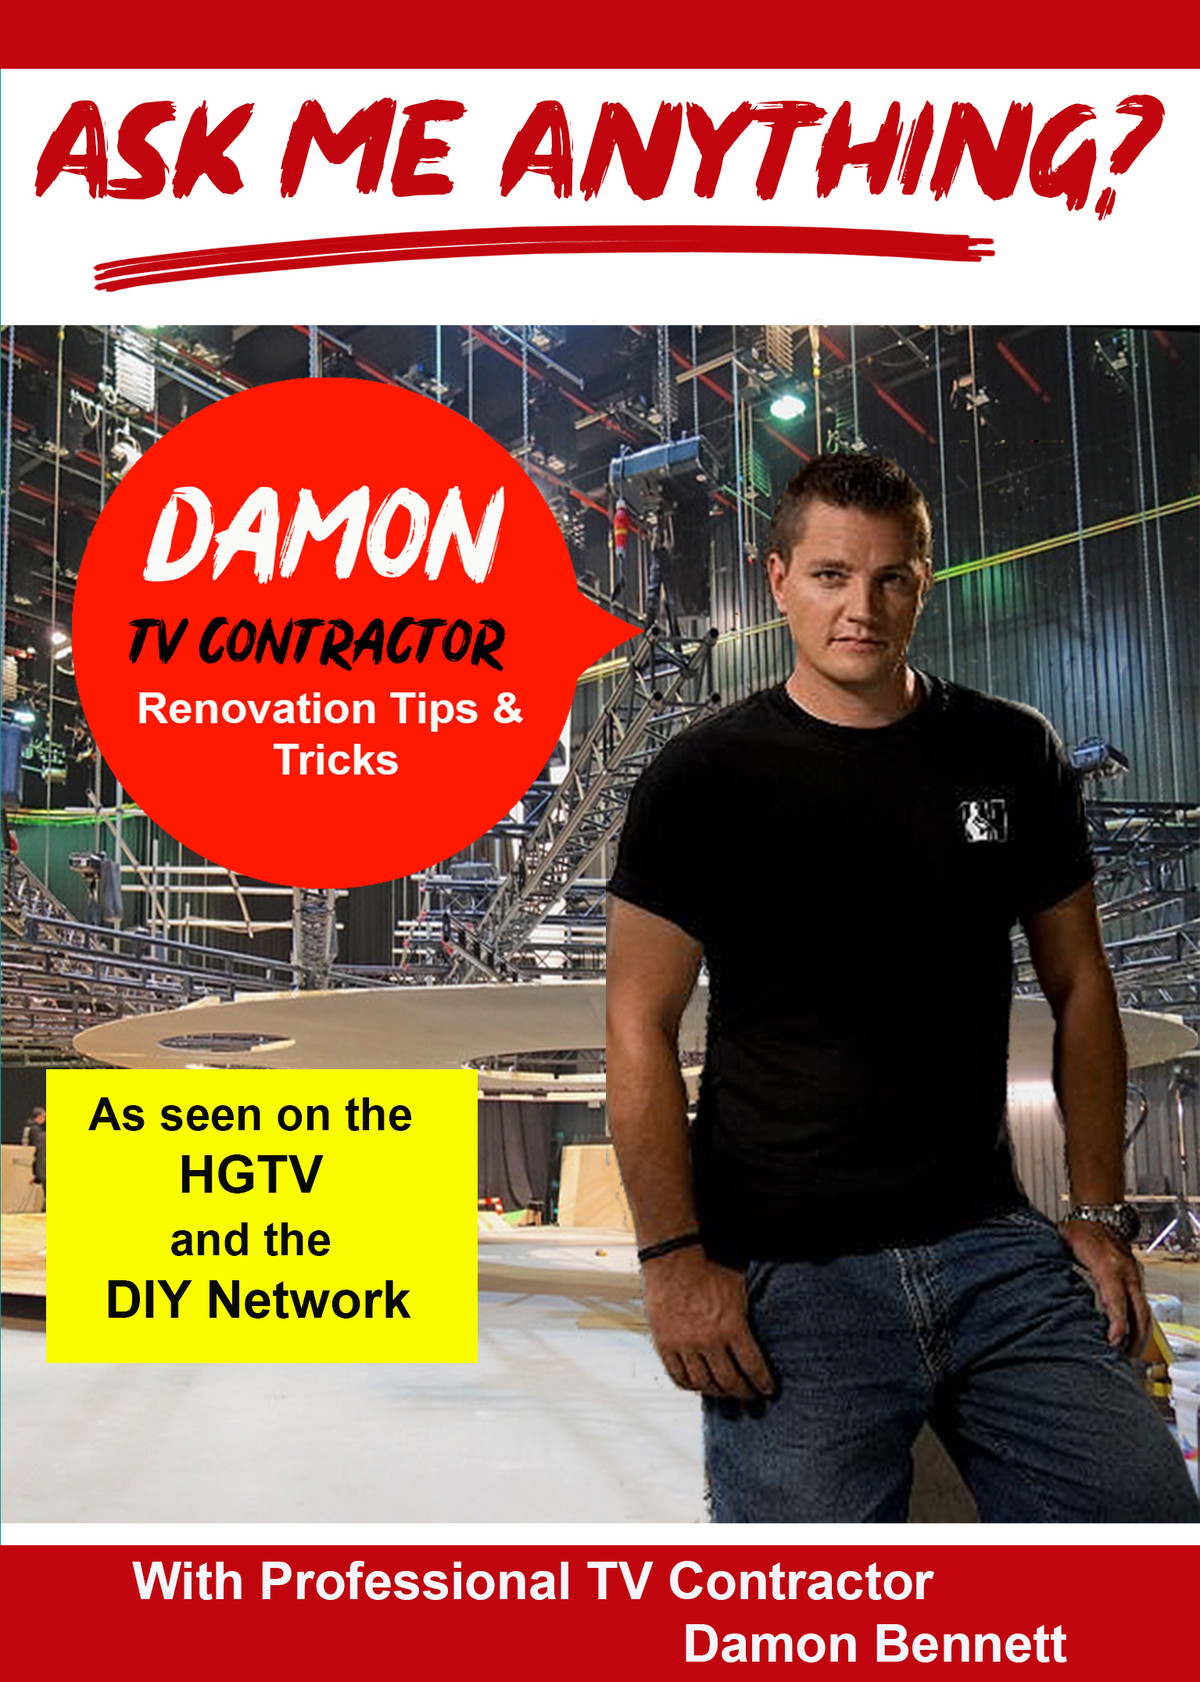 K4830 - Ask Me Anything about being a TV Contractor, Renovation Tips & Tricks with With Professional TV Contractor & Host Damon Bennett